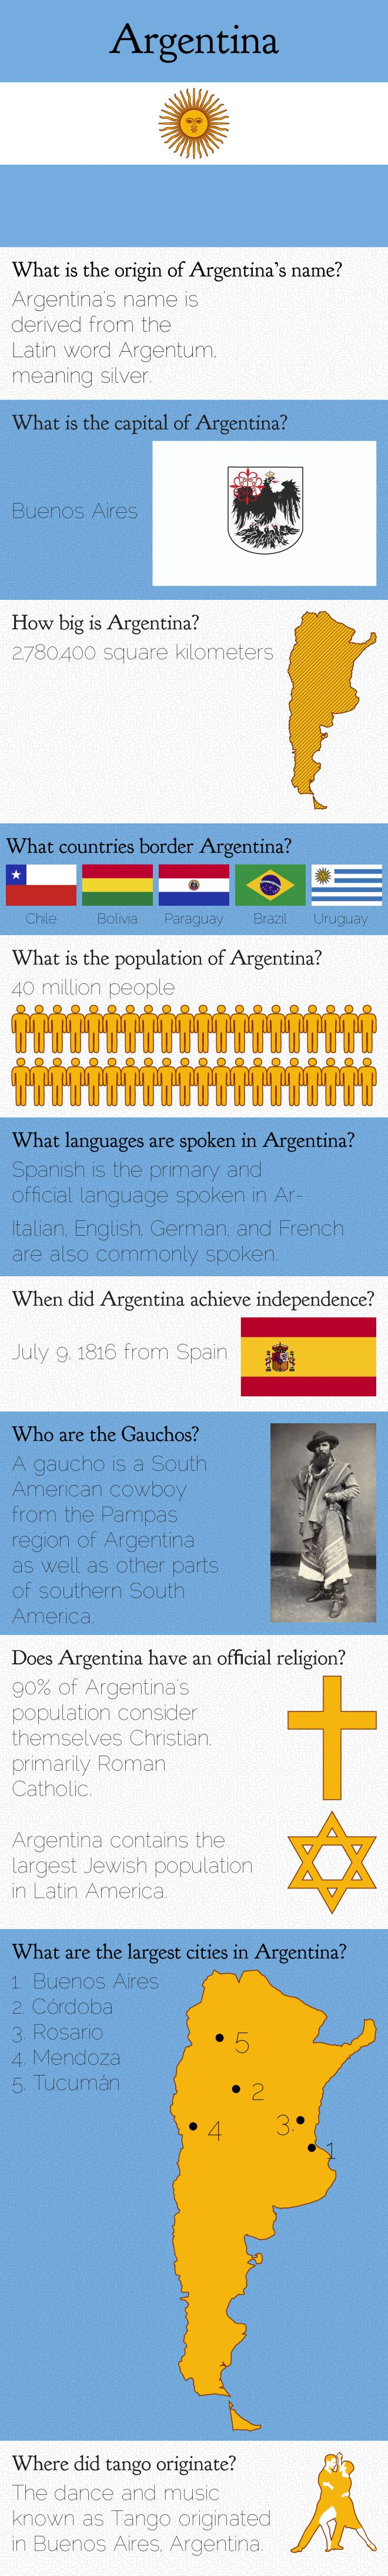 infographic fast facts about argentina #argentina | spanish